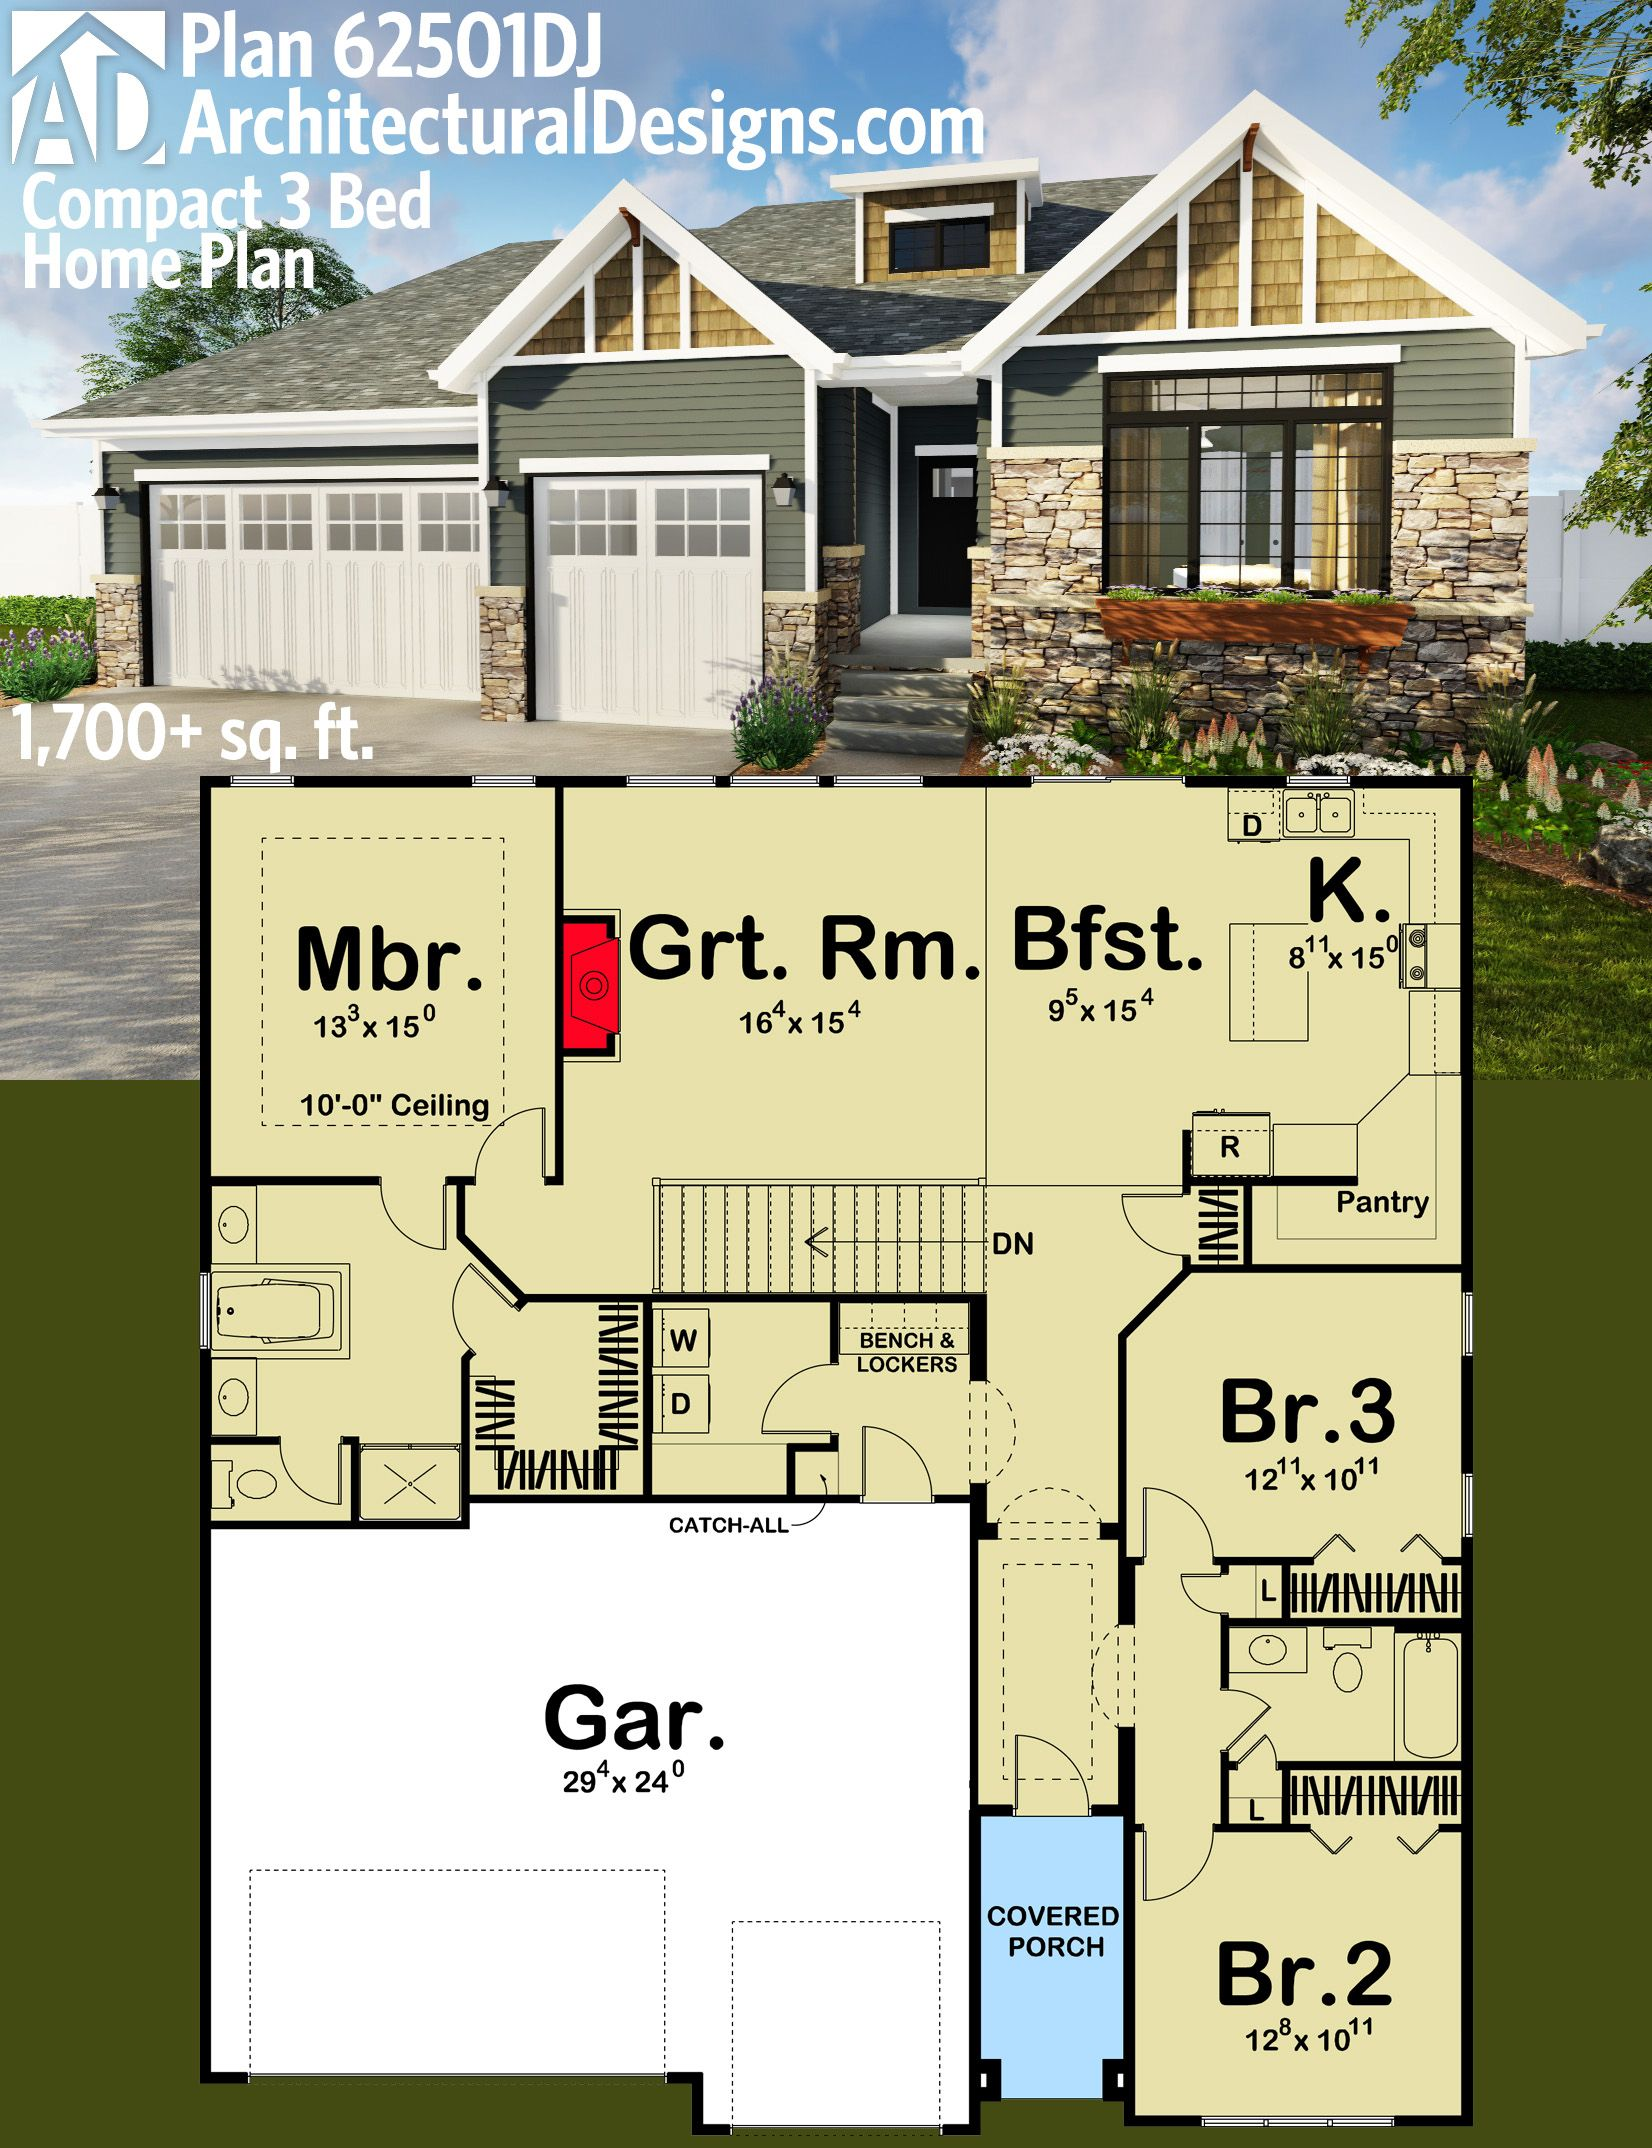 Architectural designs compact bed house plan dj easy to build over square feet of living ready when you are where do want also rh co pinterest